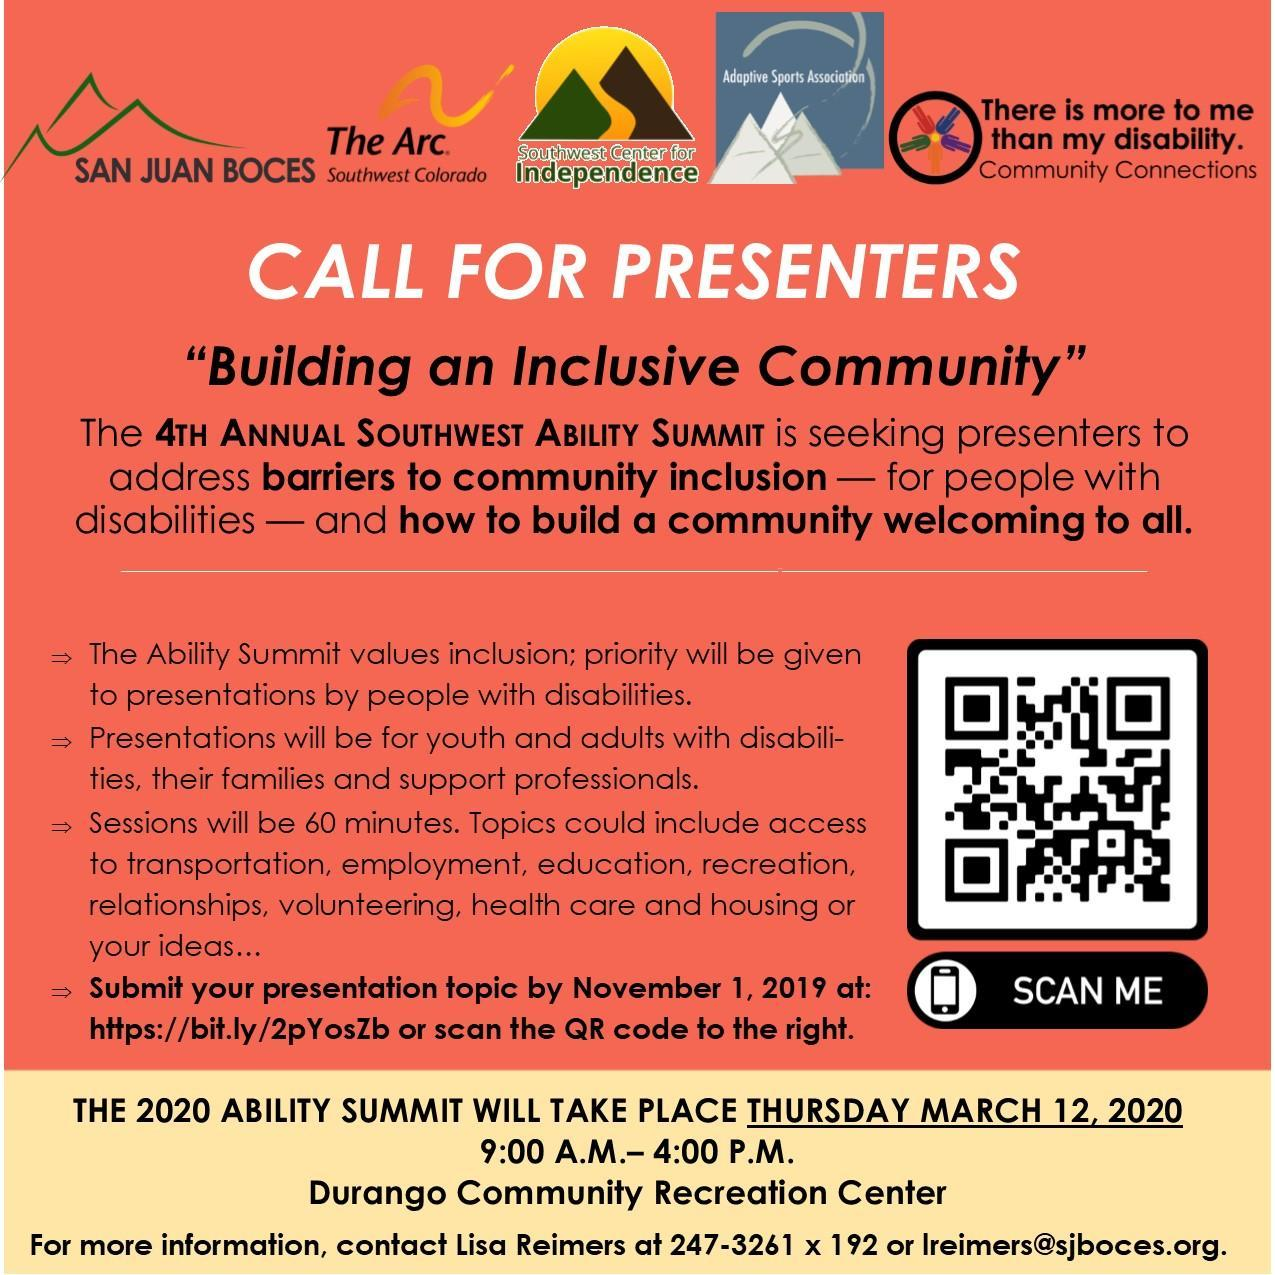 We are looking for presenters for the Southwest Ability Summit on March 12, 2020. Presentations will be for youth and adults with disabilities, their families and support professionals. Topics for this year's presentations will focus on building an inclusive community. Please share this information with anyone who may be interested in presenting. To send a presenter request, please click the link to the presenter form on our web page.